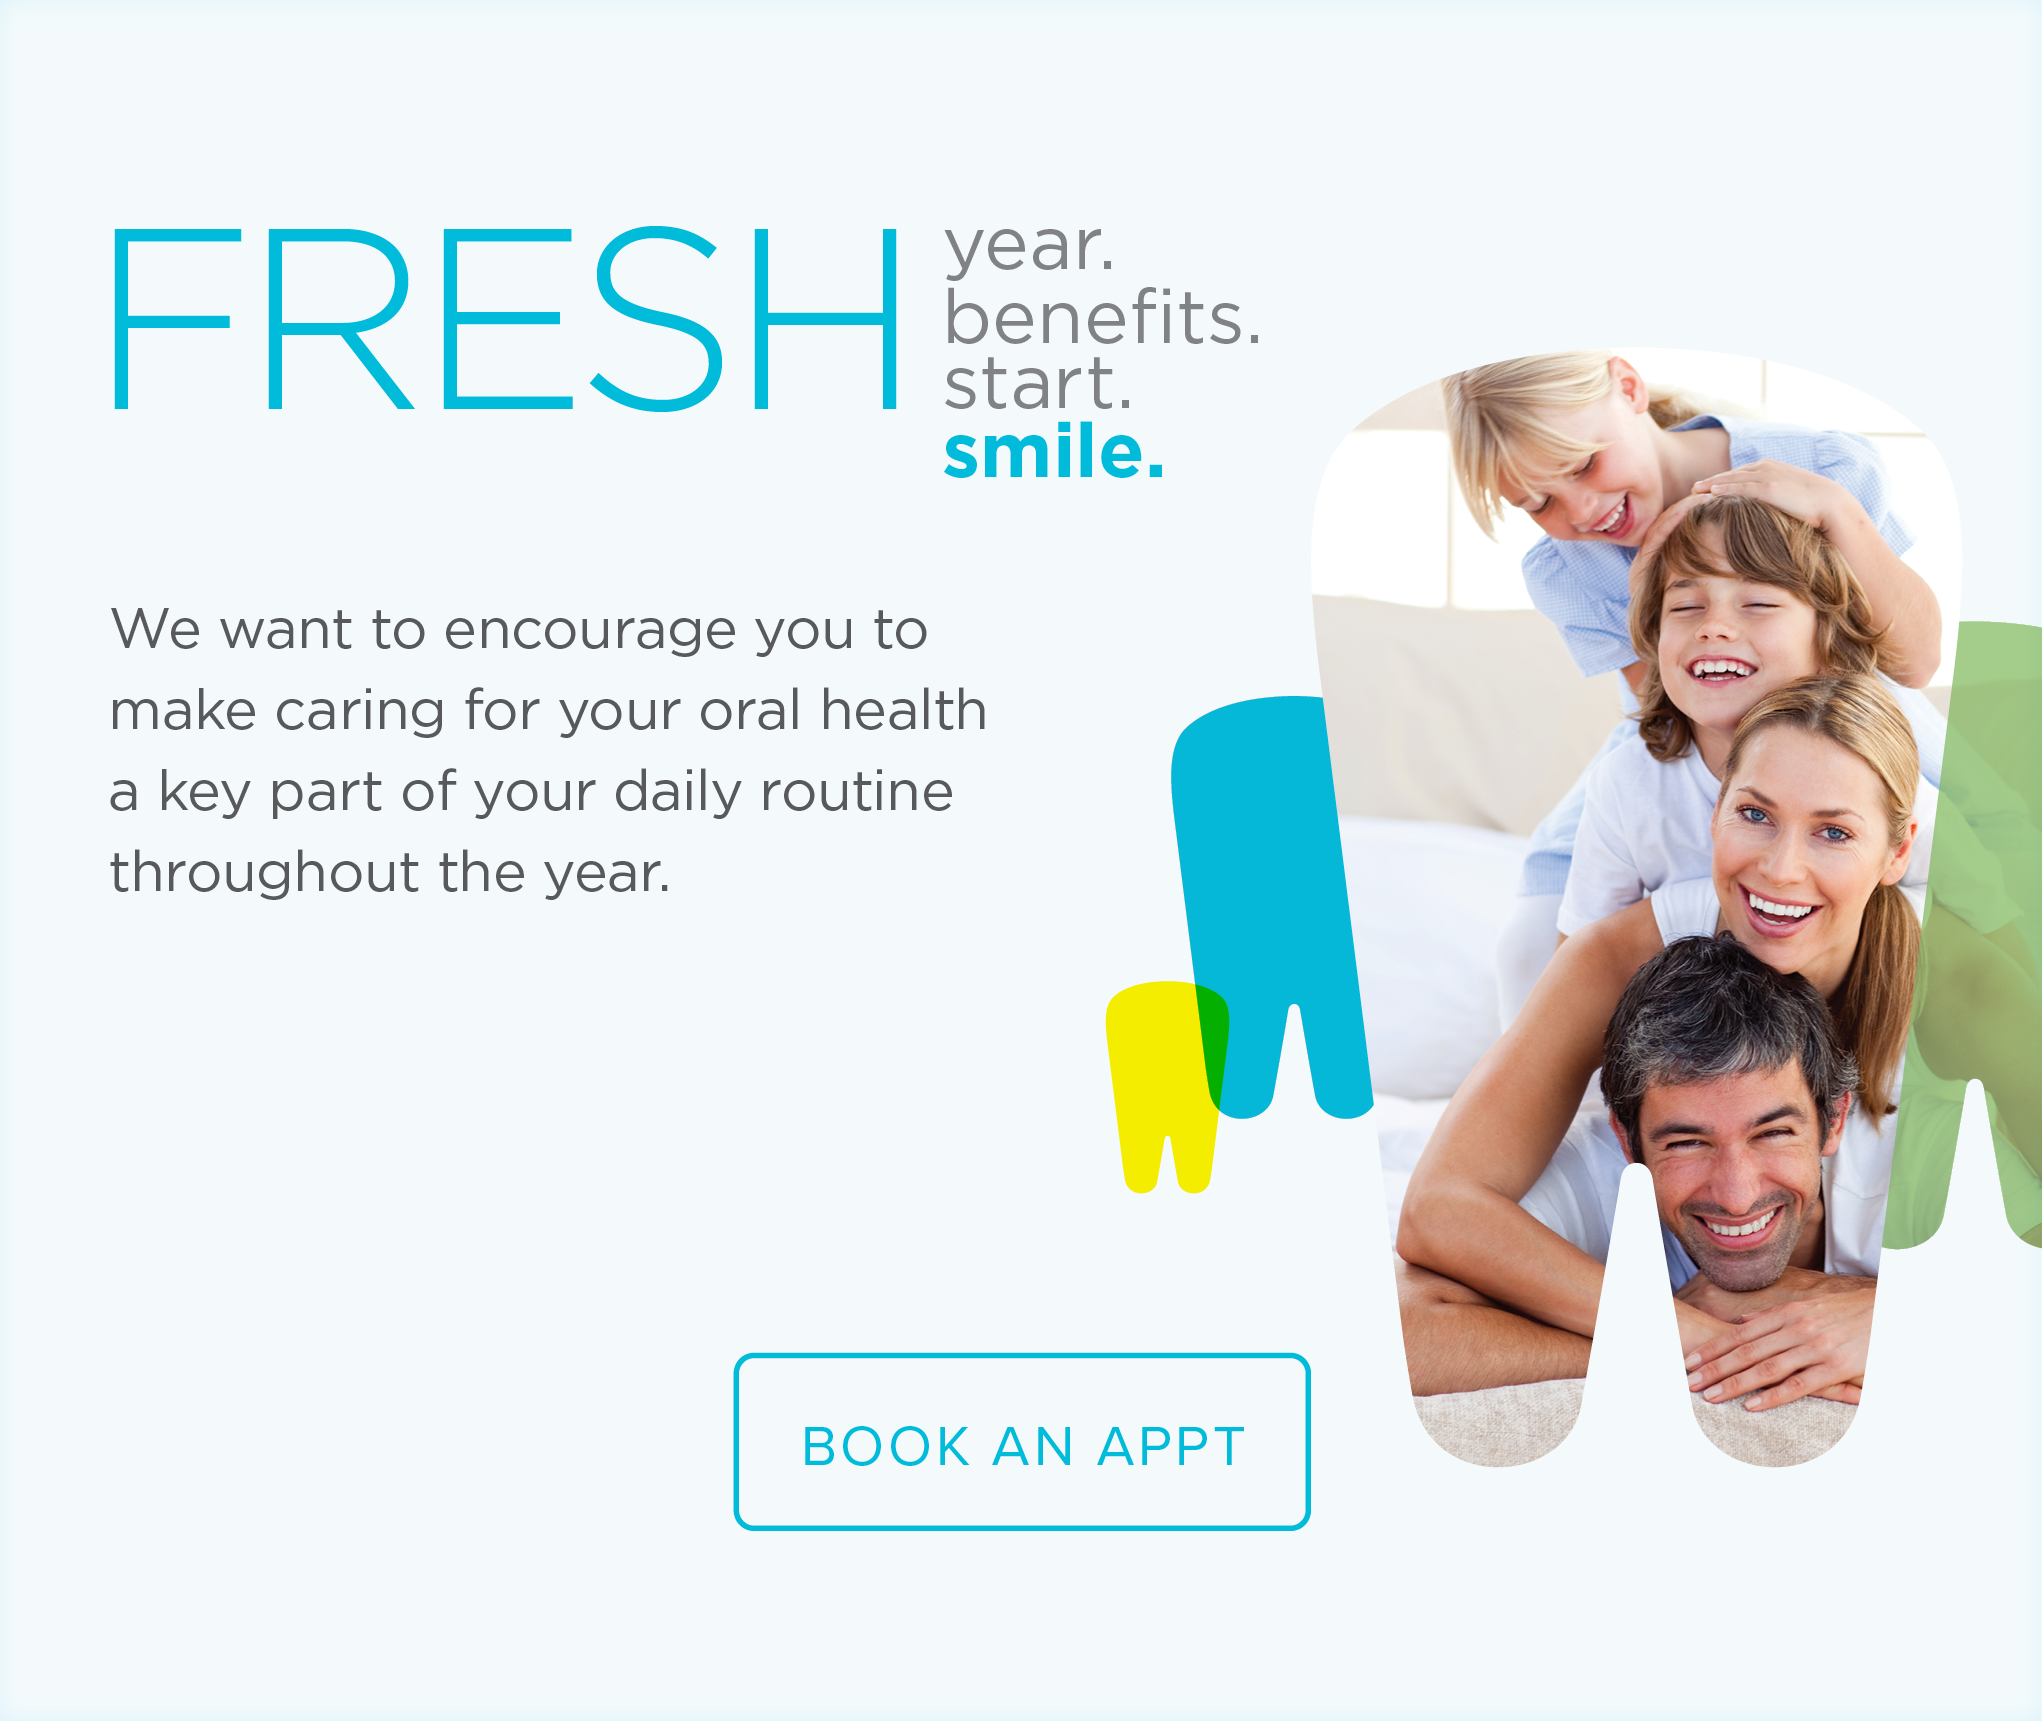 Peach Tree Dental Group and Orthodontics - Make the Most of Your Benefits